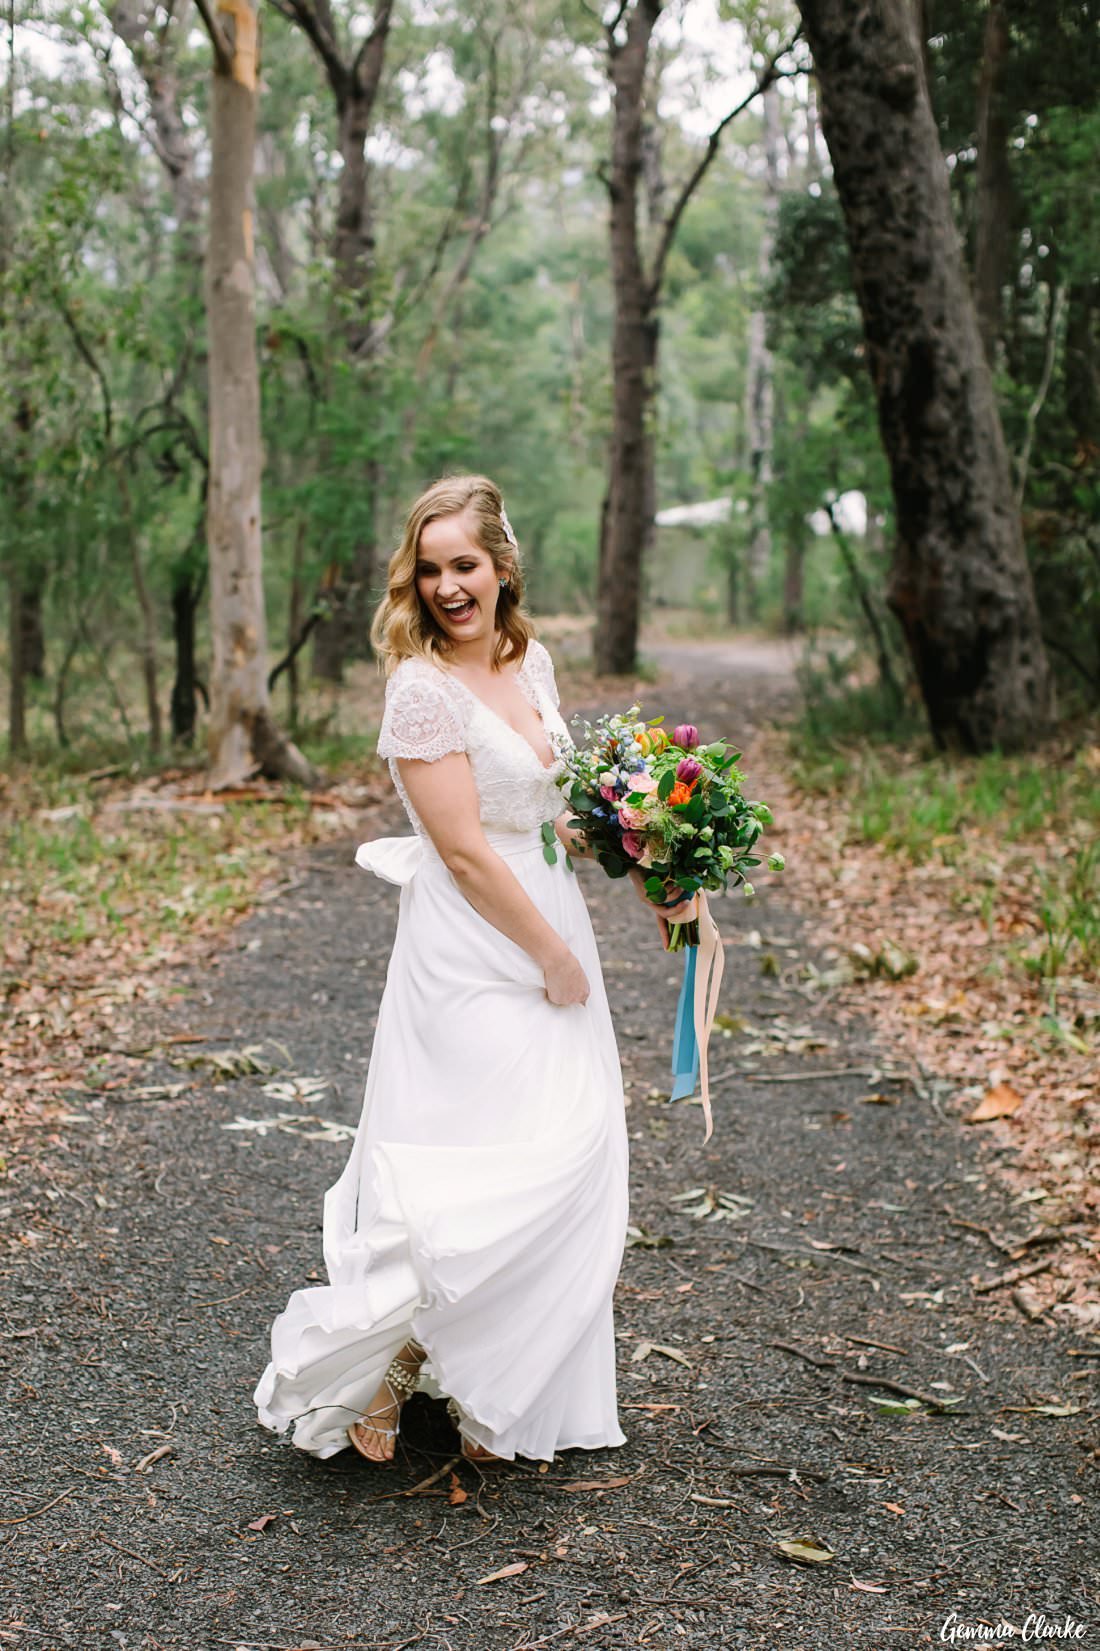 The bride was so excited and carefree at her Kangaroo Valley Winter Wedding